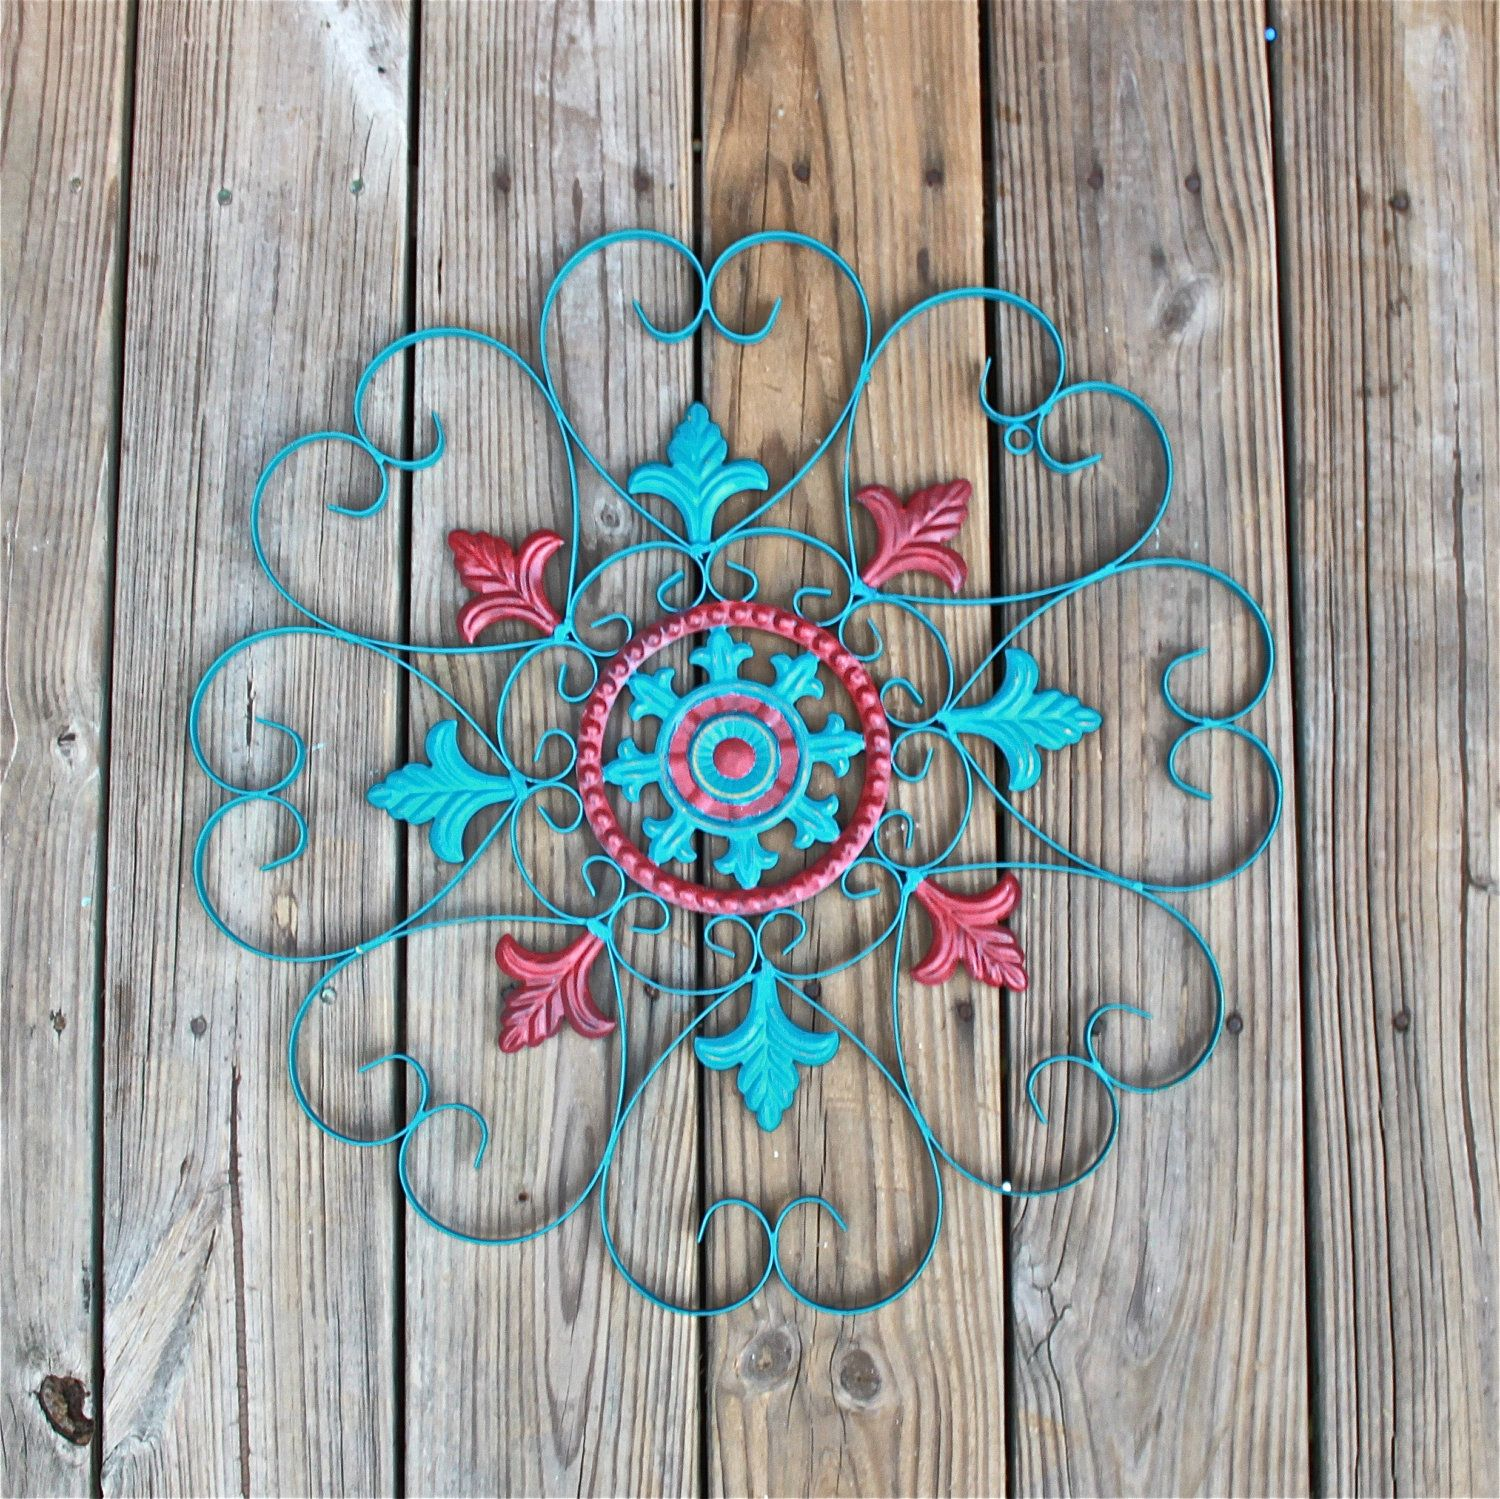 Metal wall decor teal blue red distressed shabby chic - Exterior wall decorations for house ...